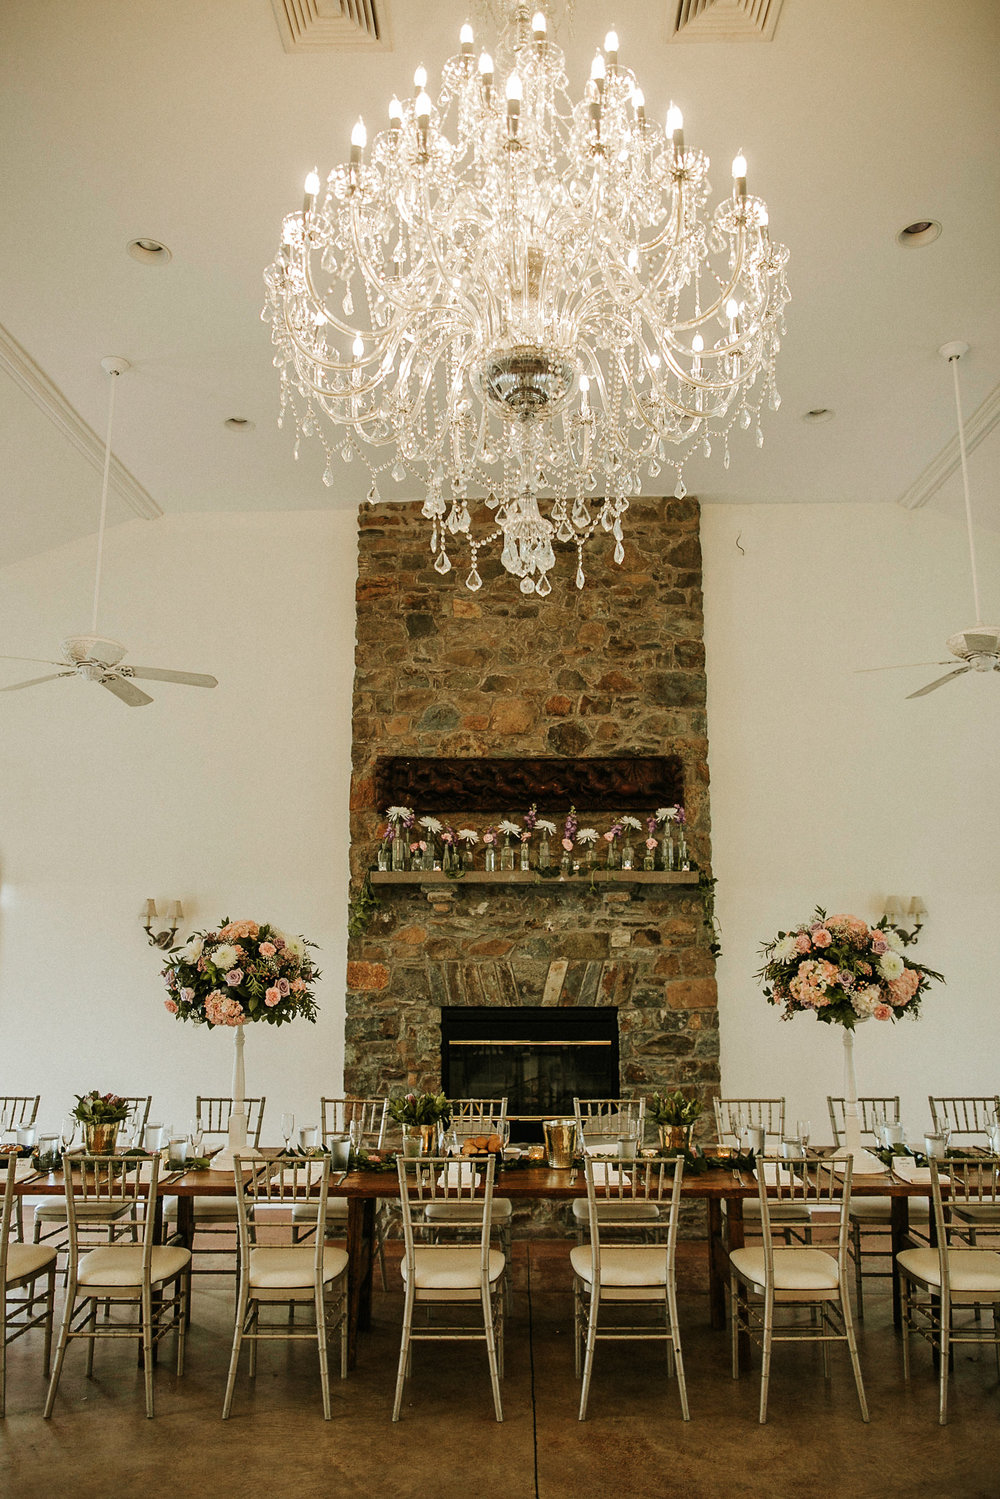 Chandelier over bridal table